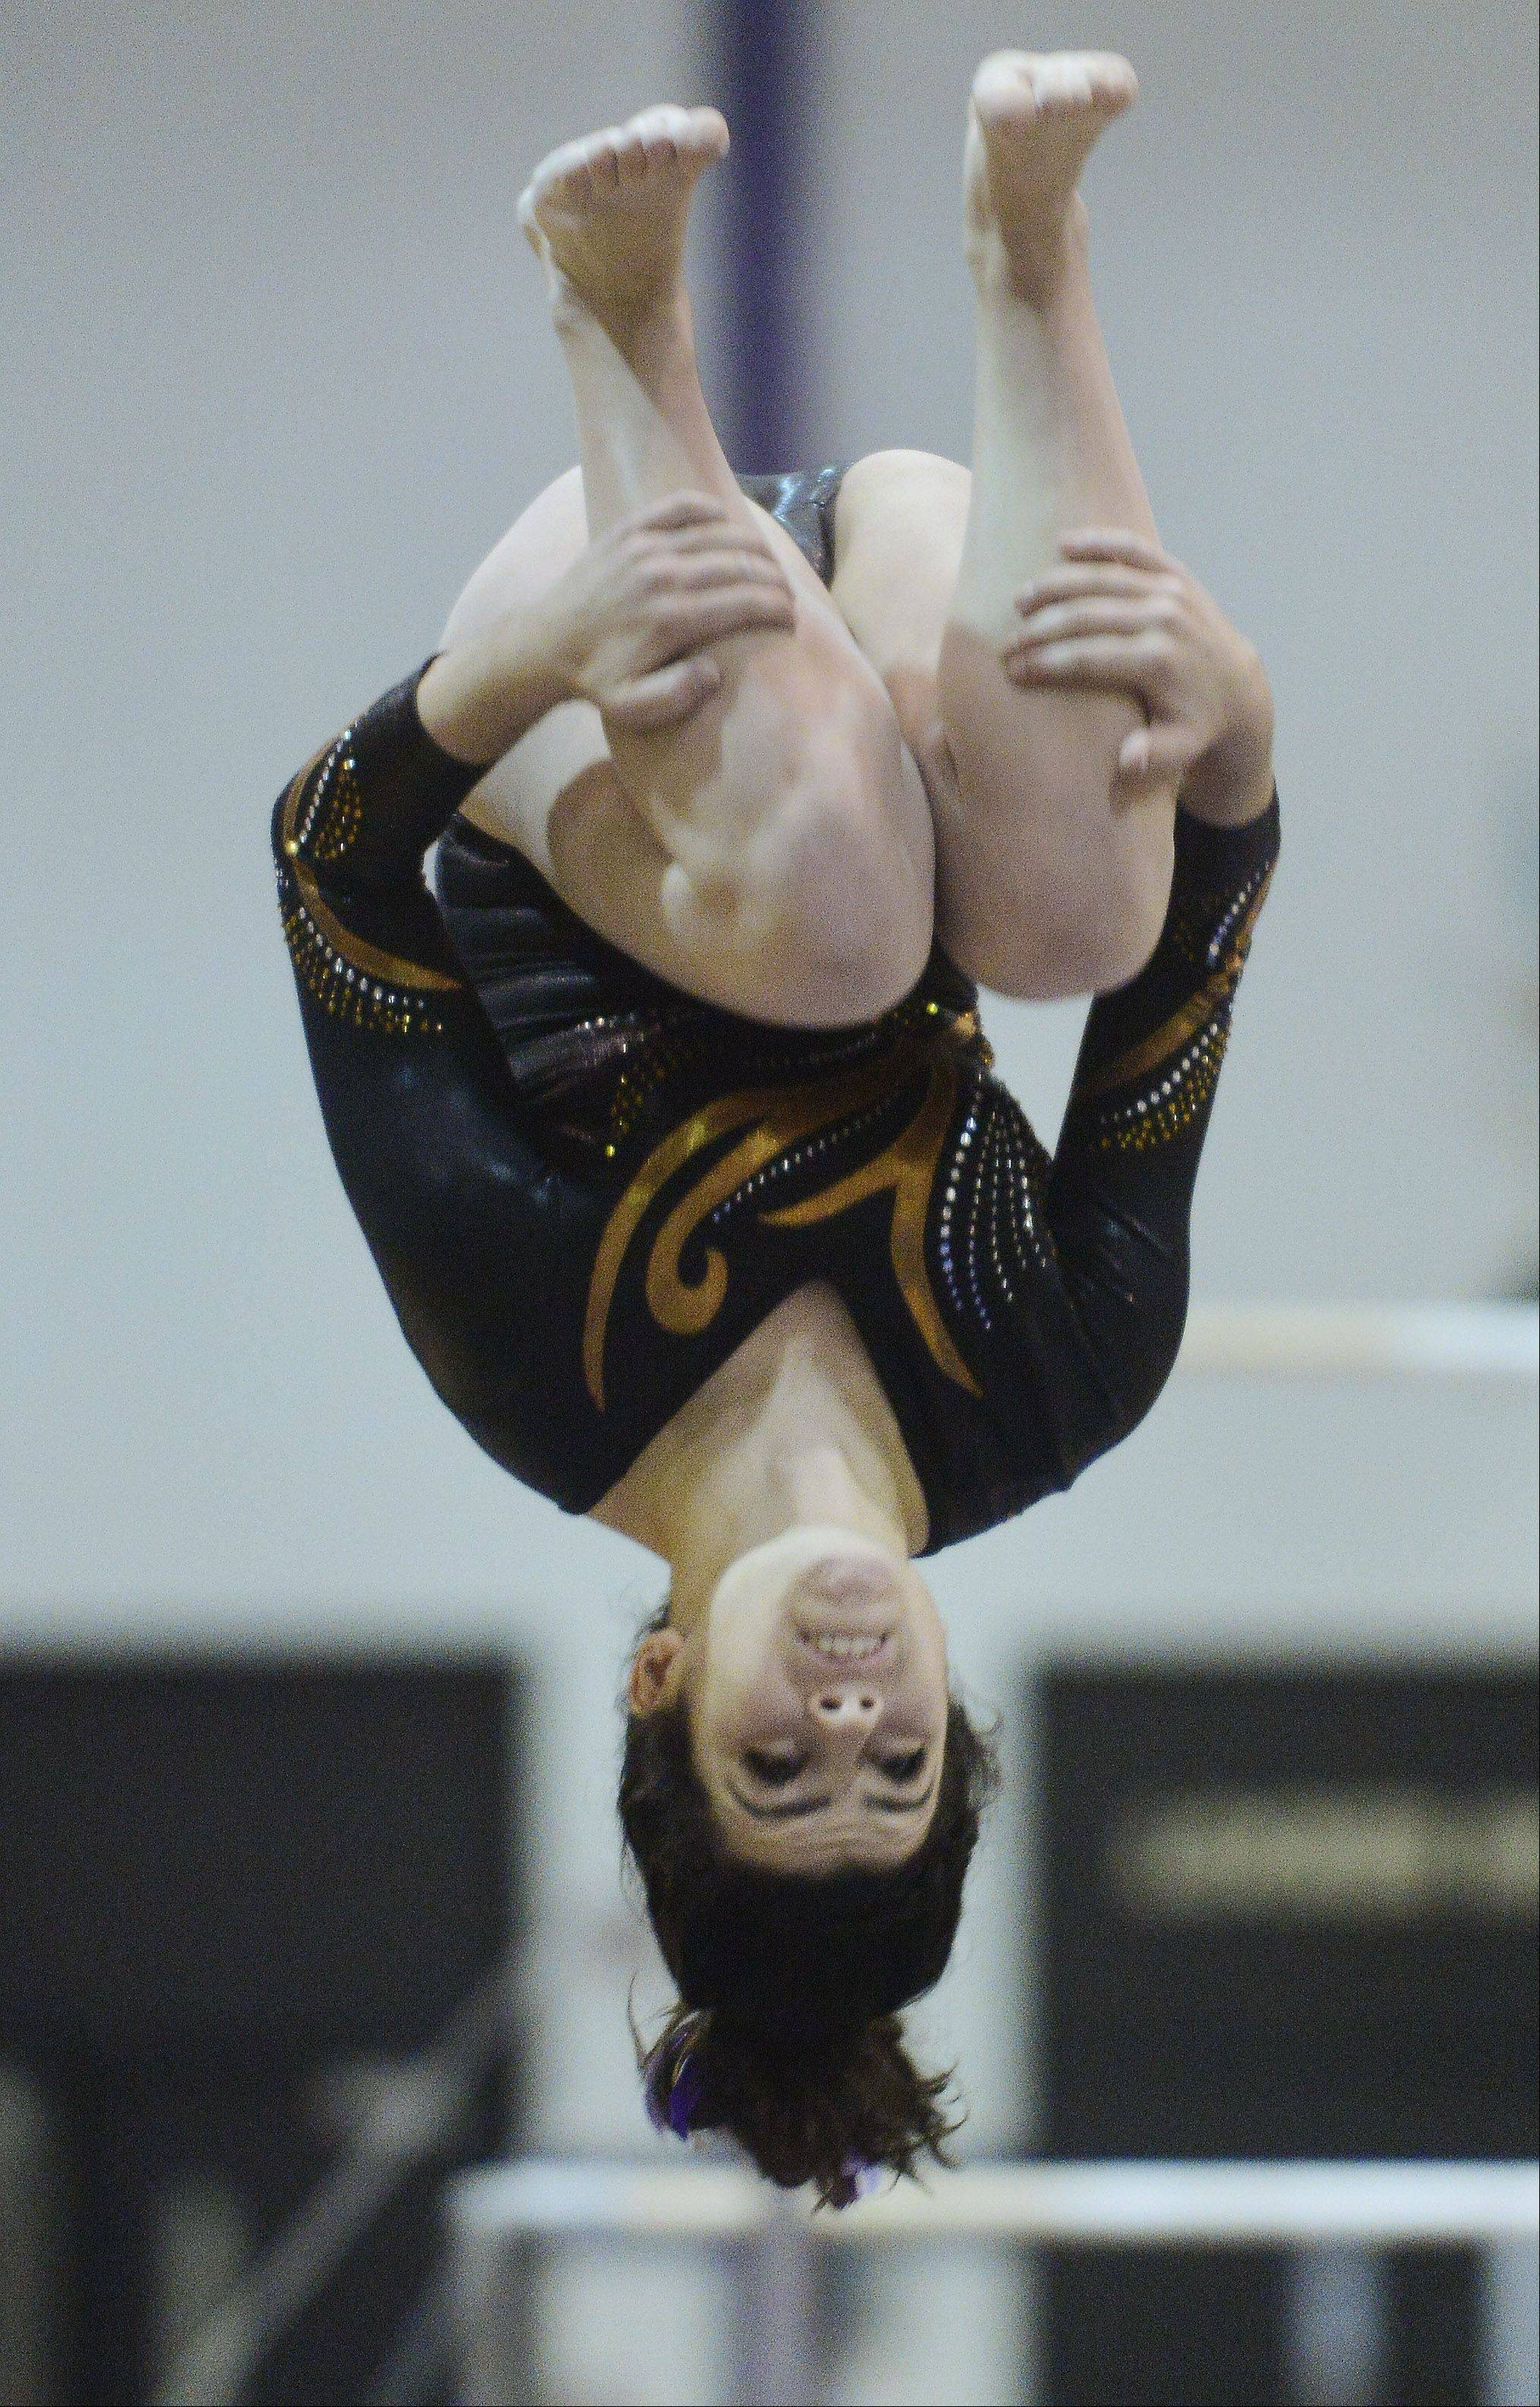 JOE LEWNARD/jlewnard@dailyherald.comCarmel's Antonia Durnil competes on the balance beam during the Al Galatte girls gymnastics invitational Rolling Meadows Saturday.